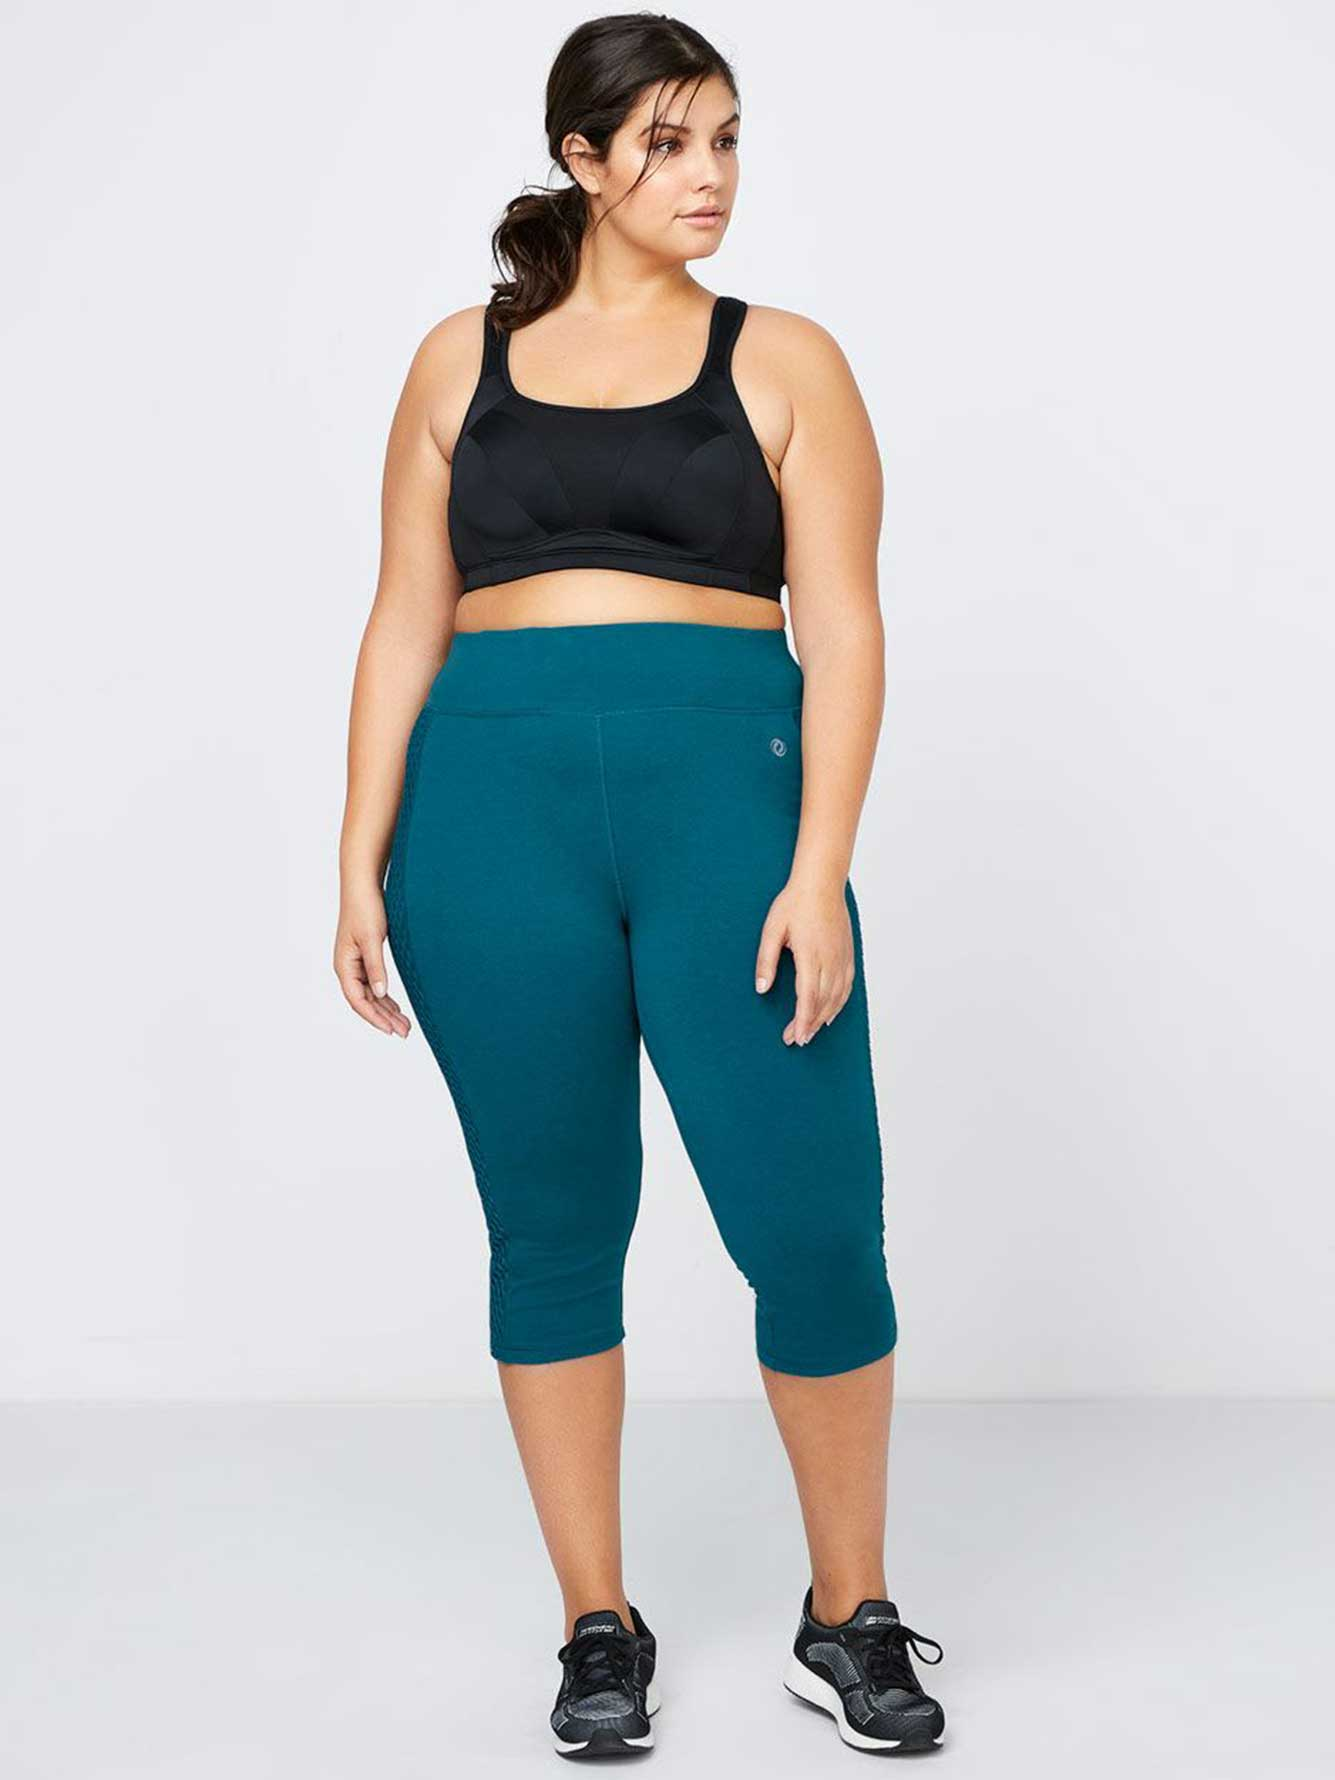 Plus-Size Sports Bra - ActiveZone